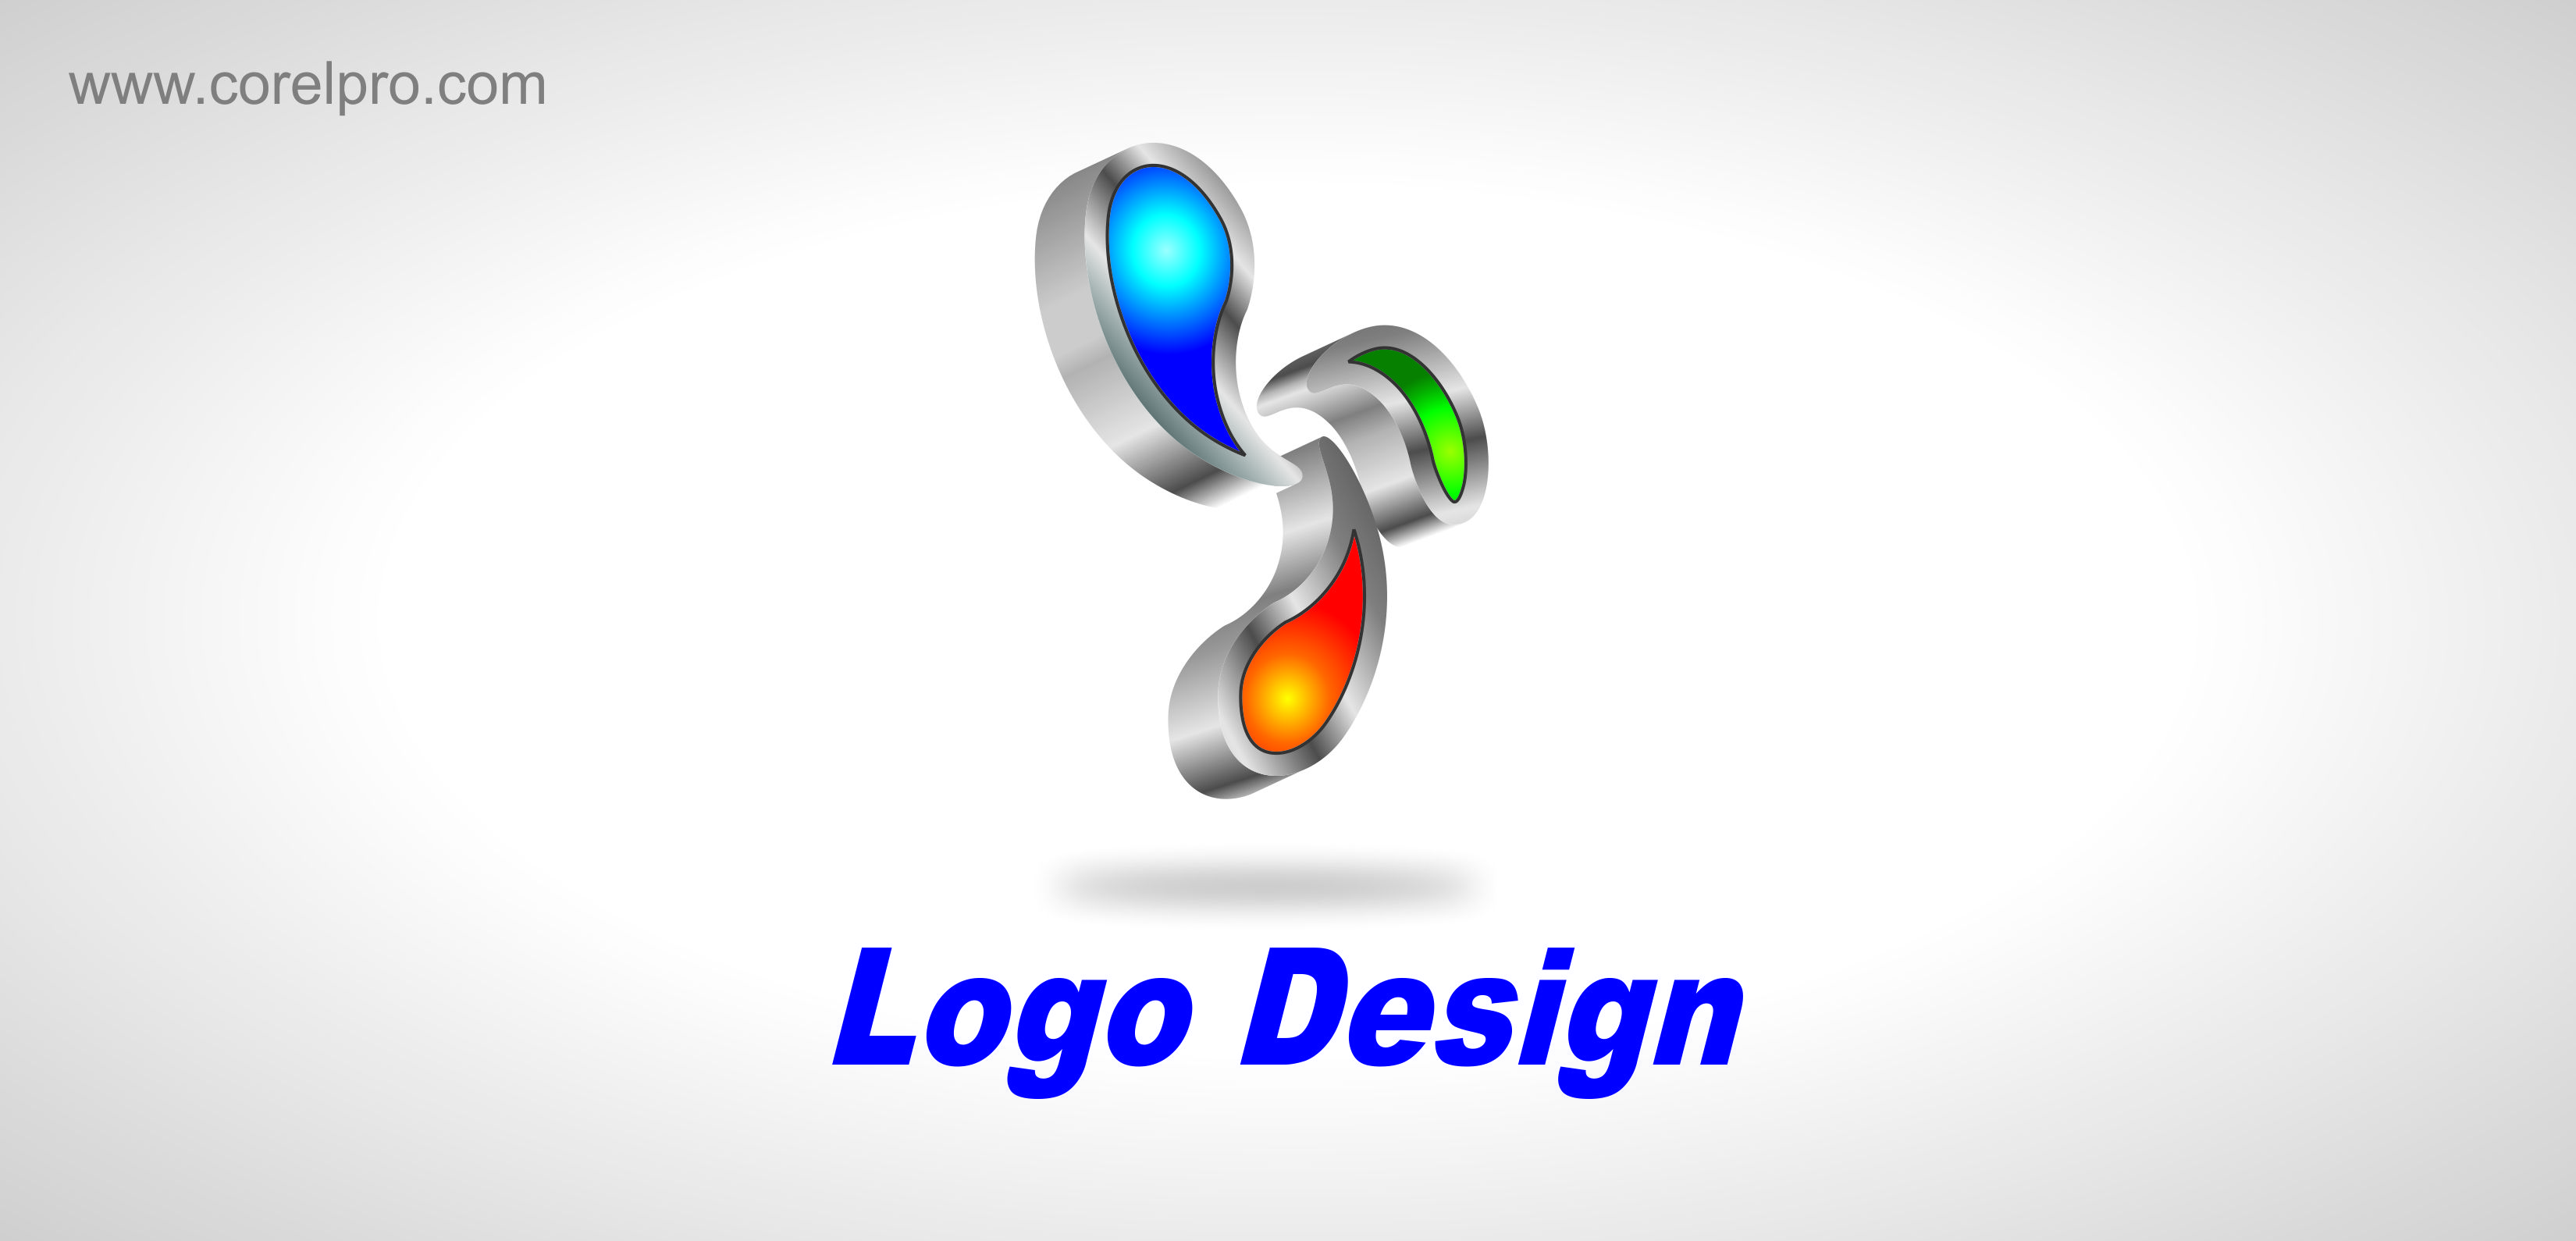 Logo Design Ideas logo design by gldesigns gldesigns Best Logo Design Ideas 39 In Coreldraw Tutorial With Free Source File Download Logo Design Ideas Video Tutorials For How To Make Logo Elements